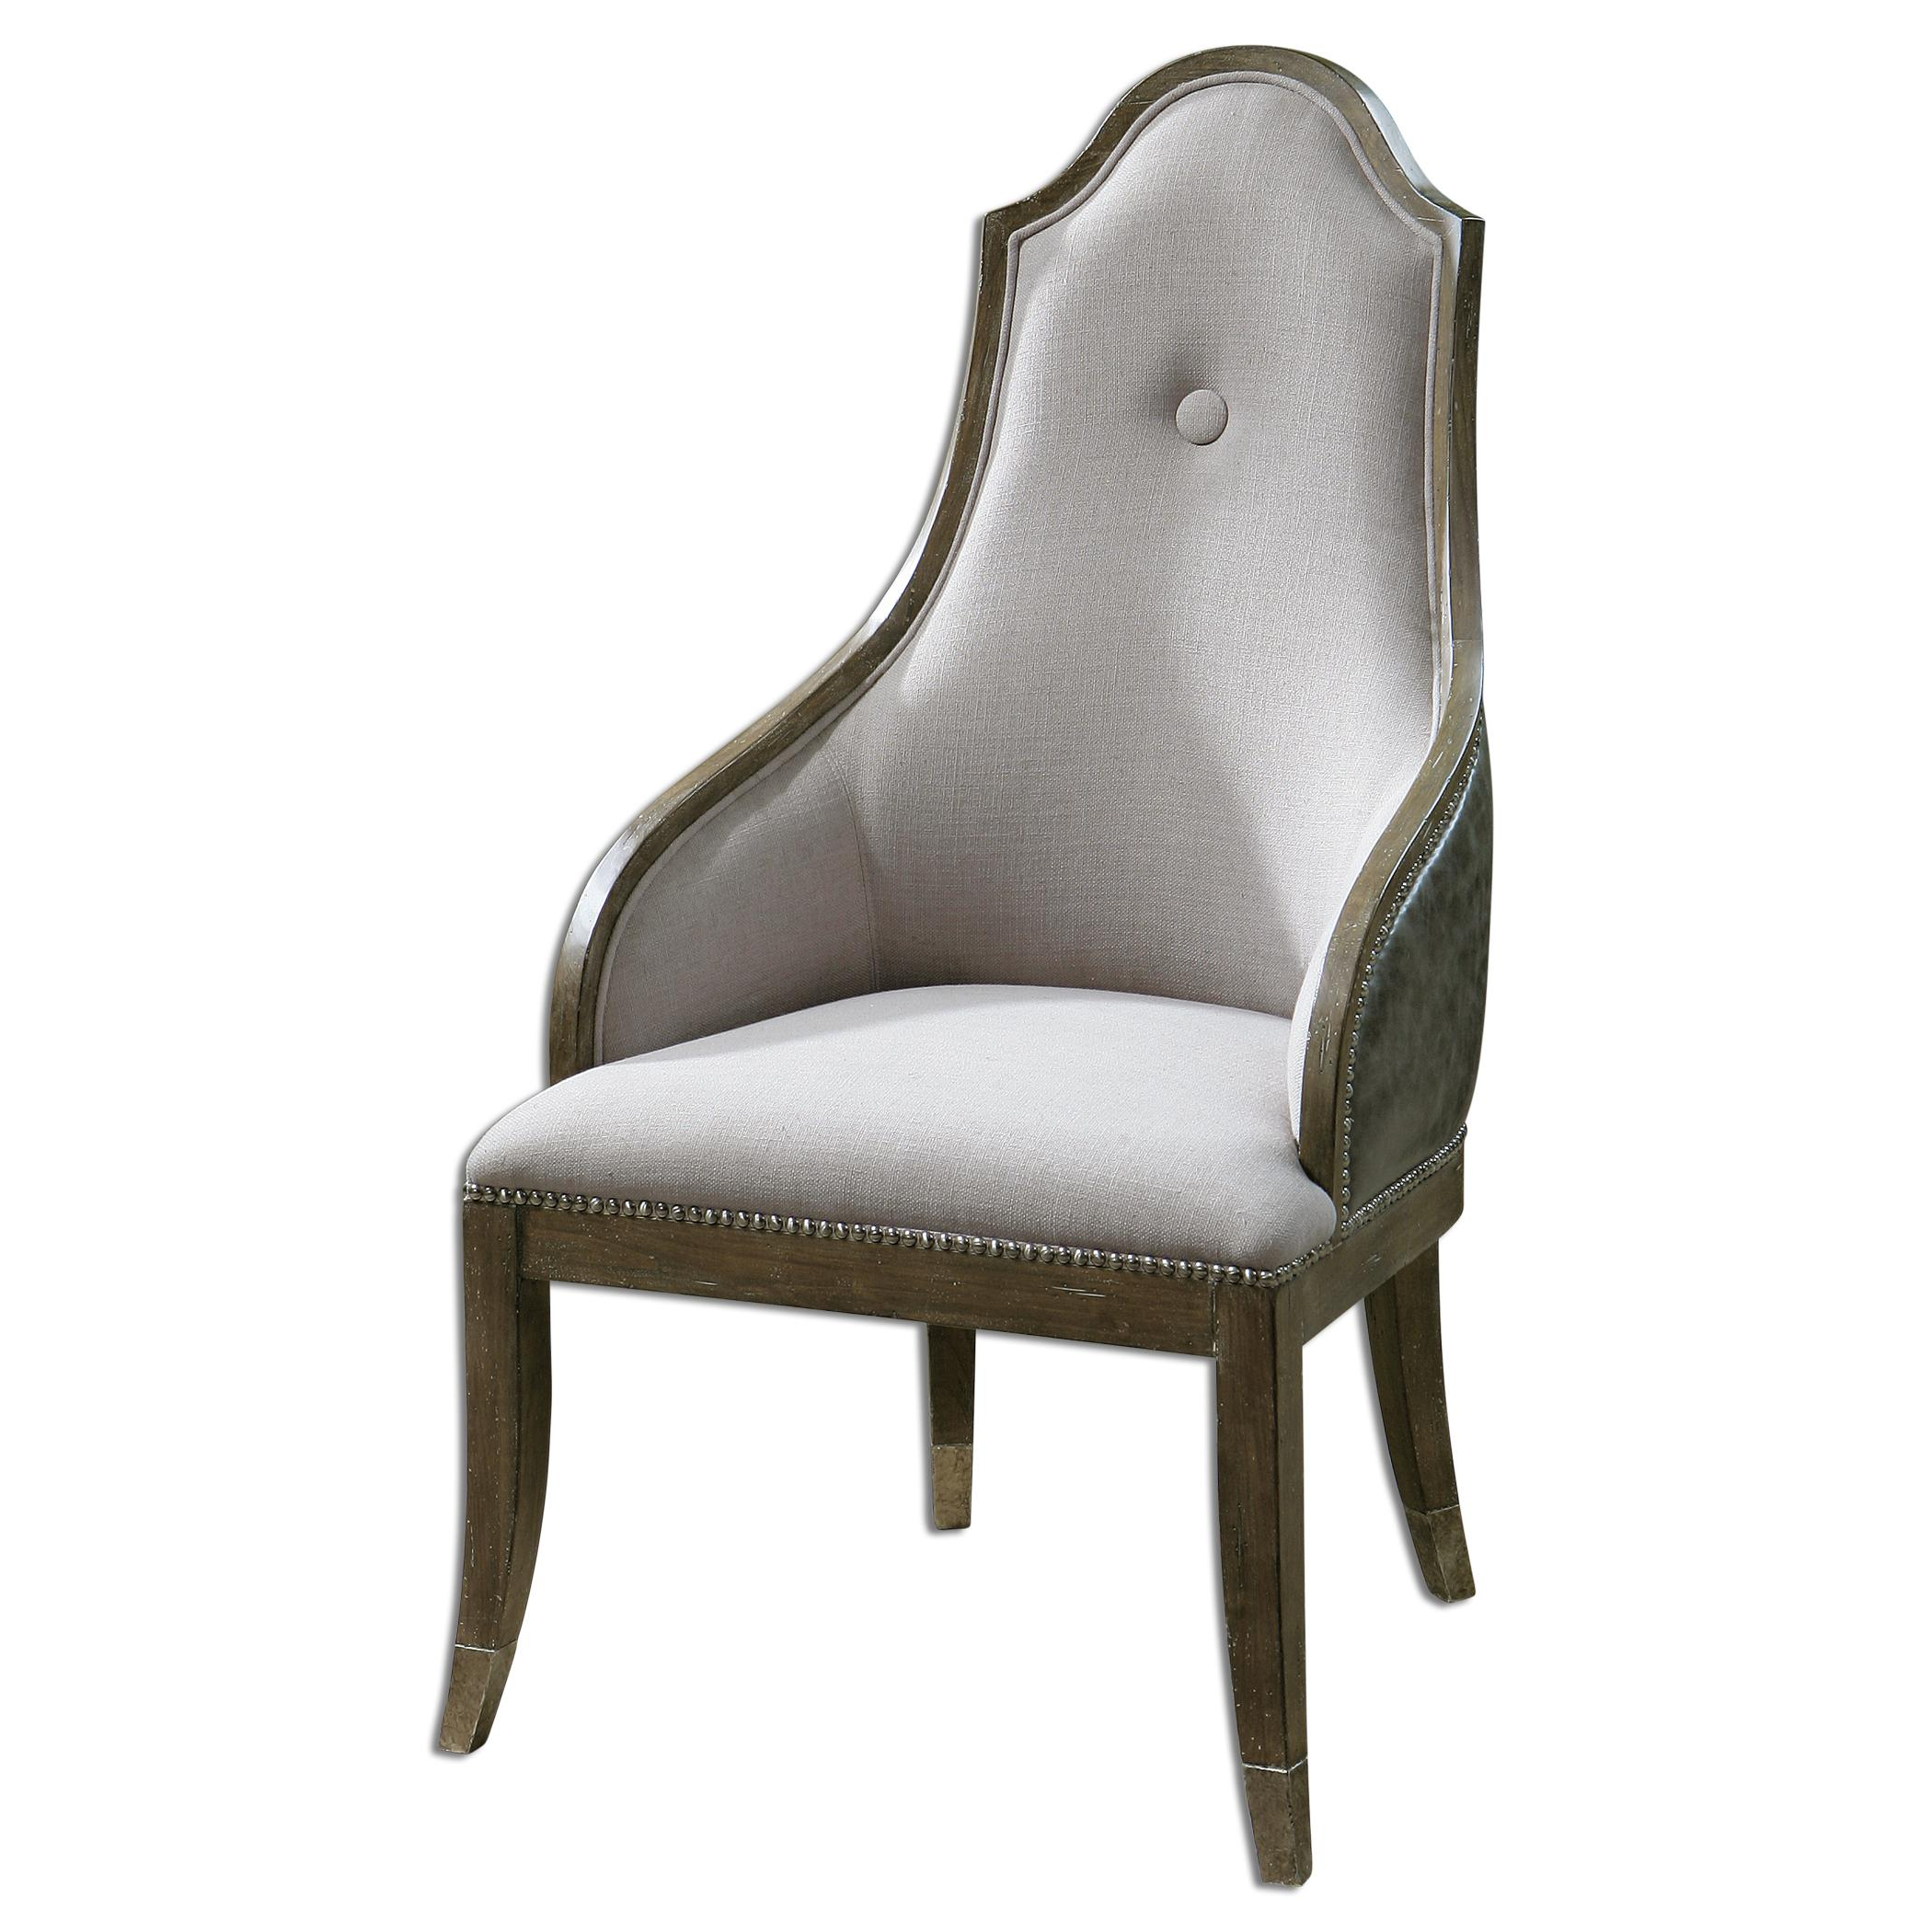 Uttermost Accent Furniture Sylvana Gray Accent Chair - Item Number: 23161